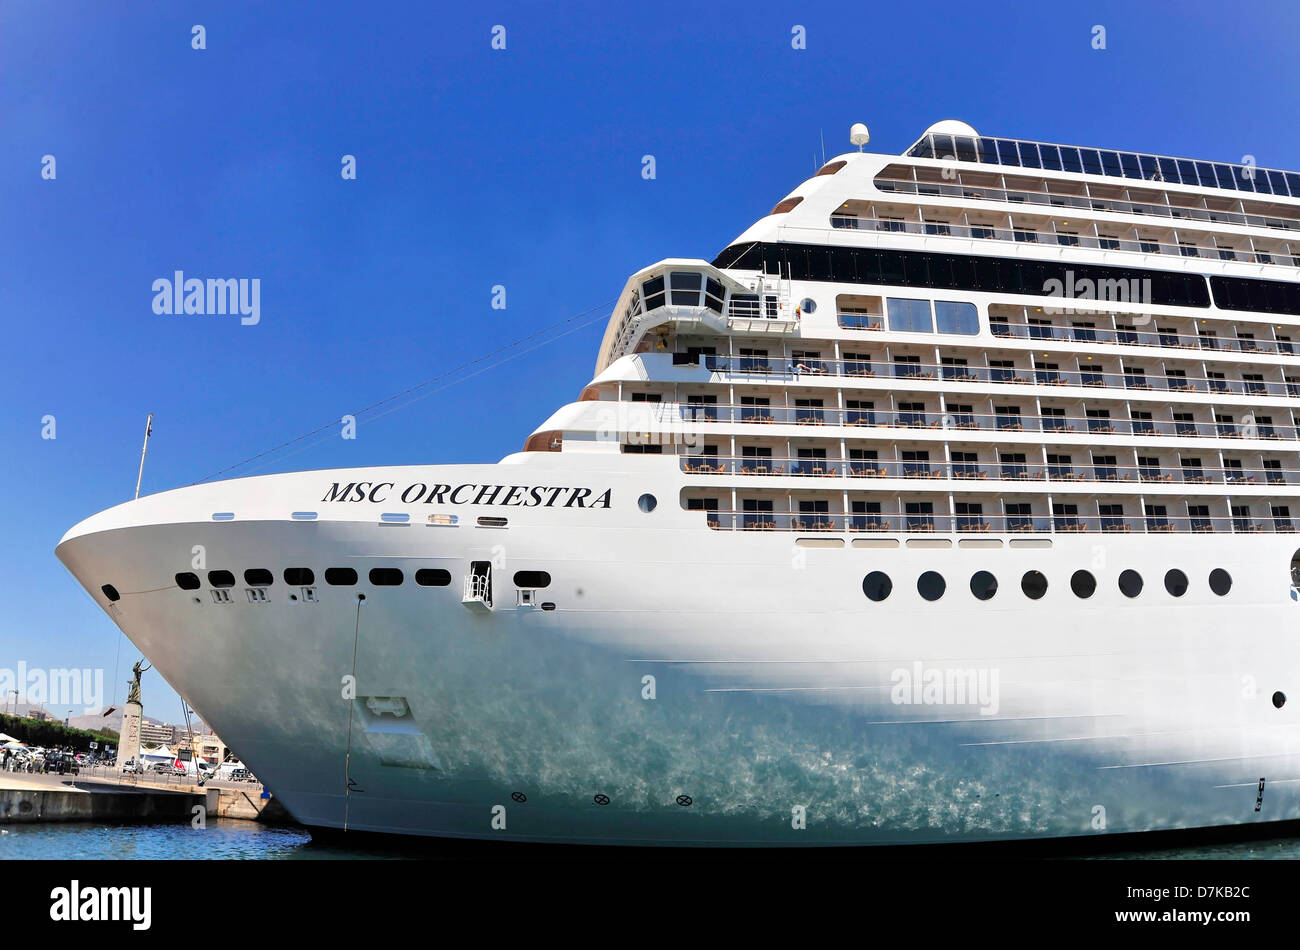 de bateau croisi re croisi re msc orchestra banque d 39 images photo stock 56359476 alamy. Black Bedroom Furniture Sets. Home Design Ideas